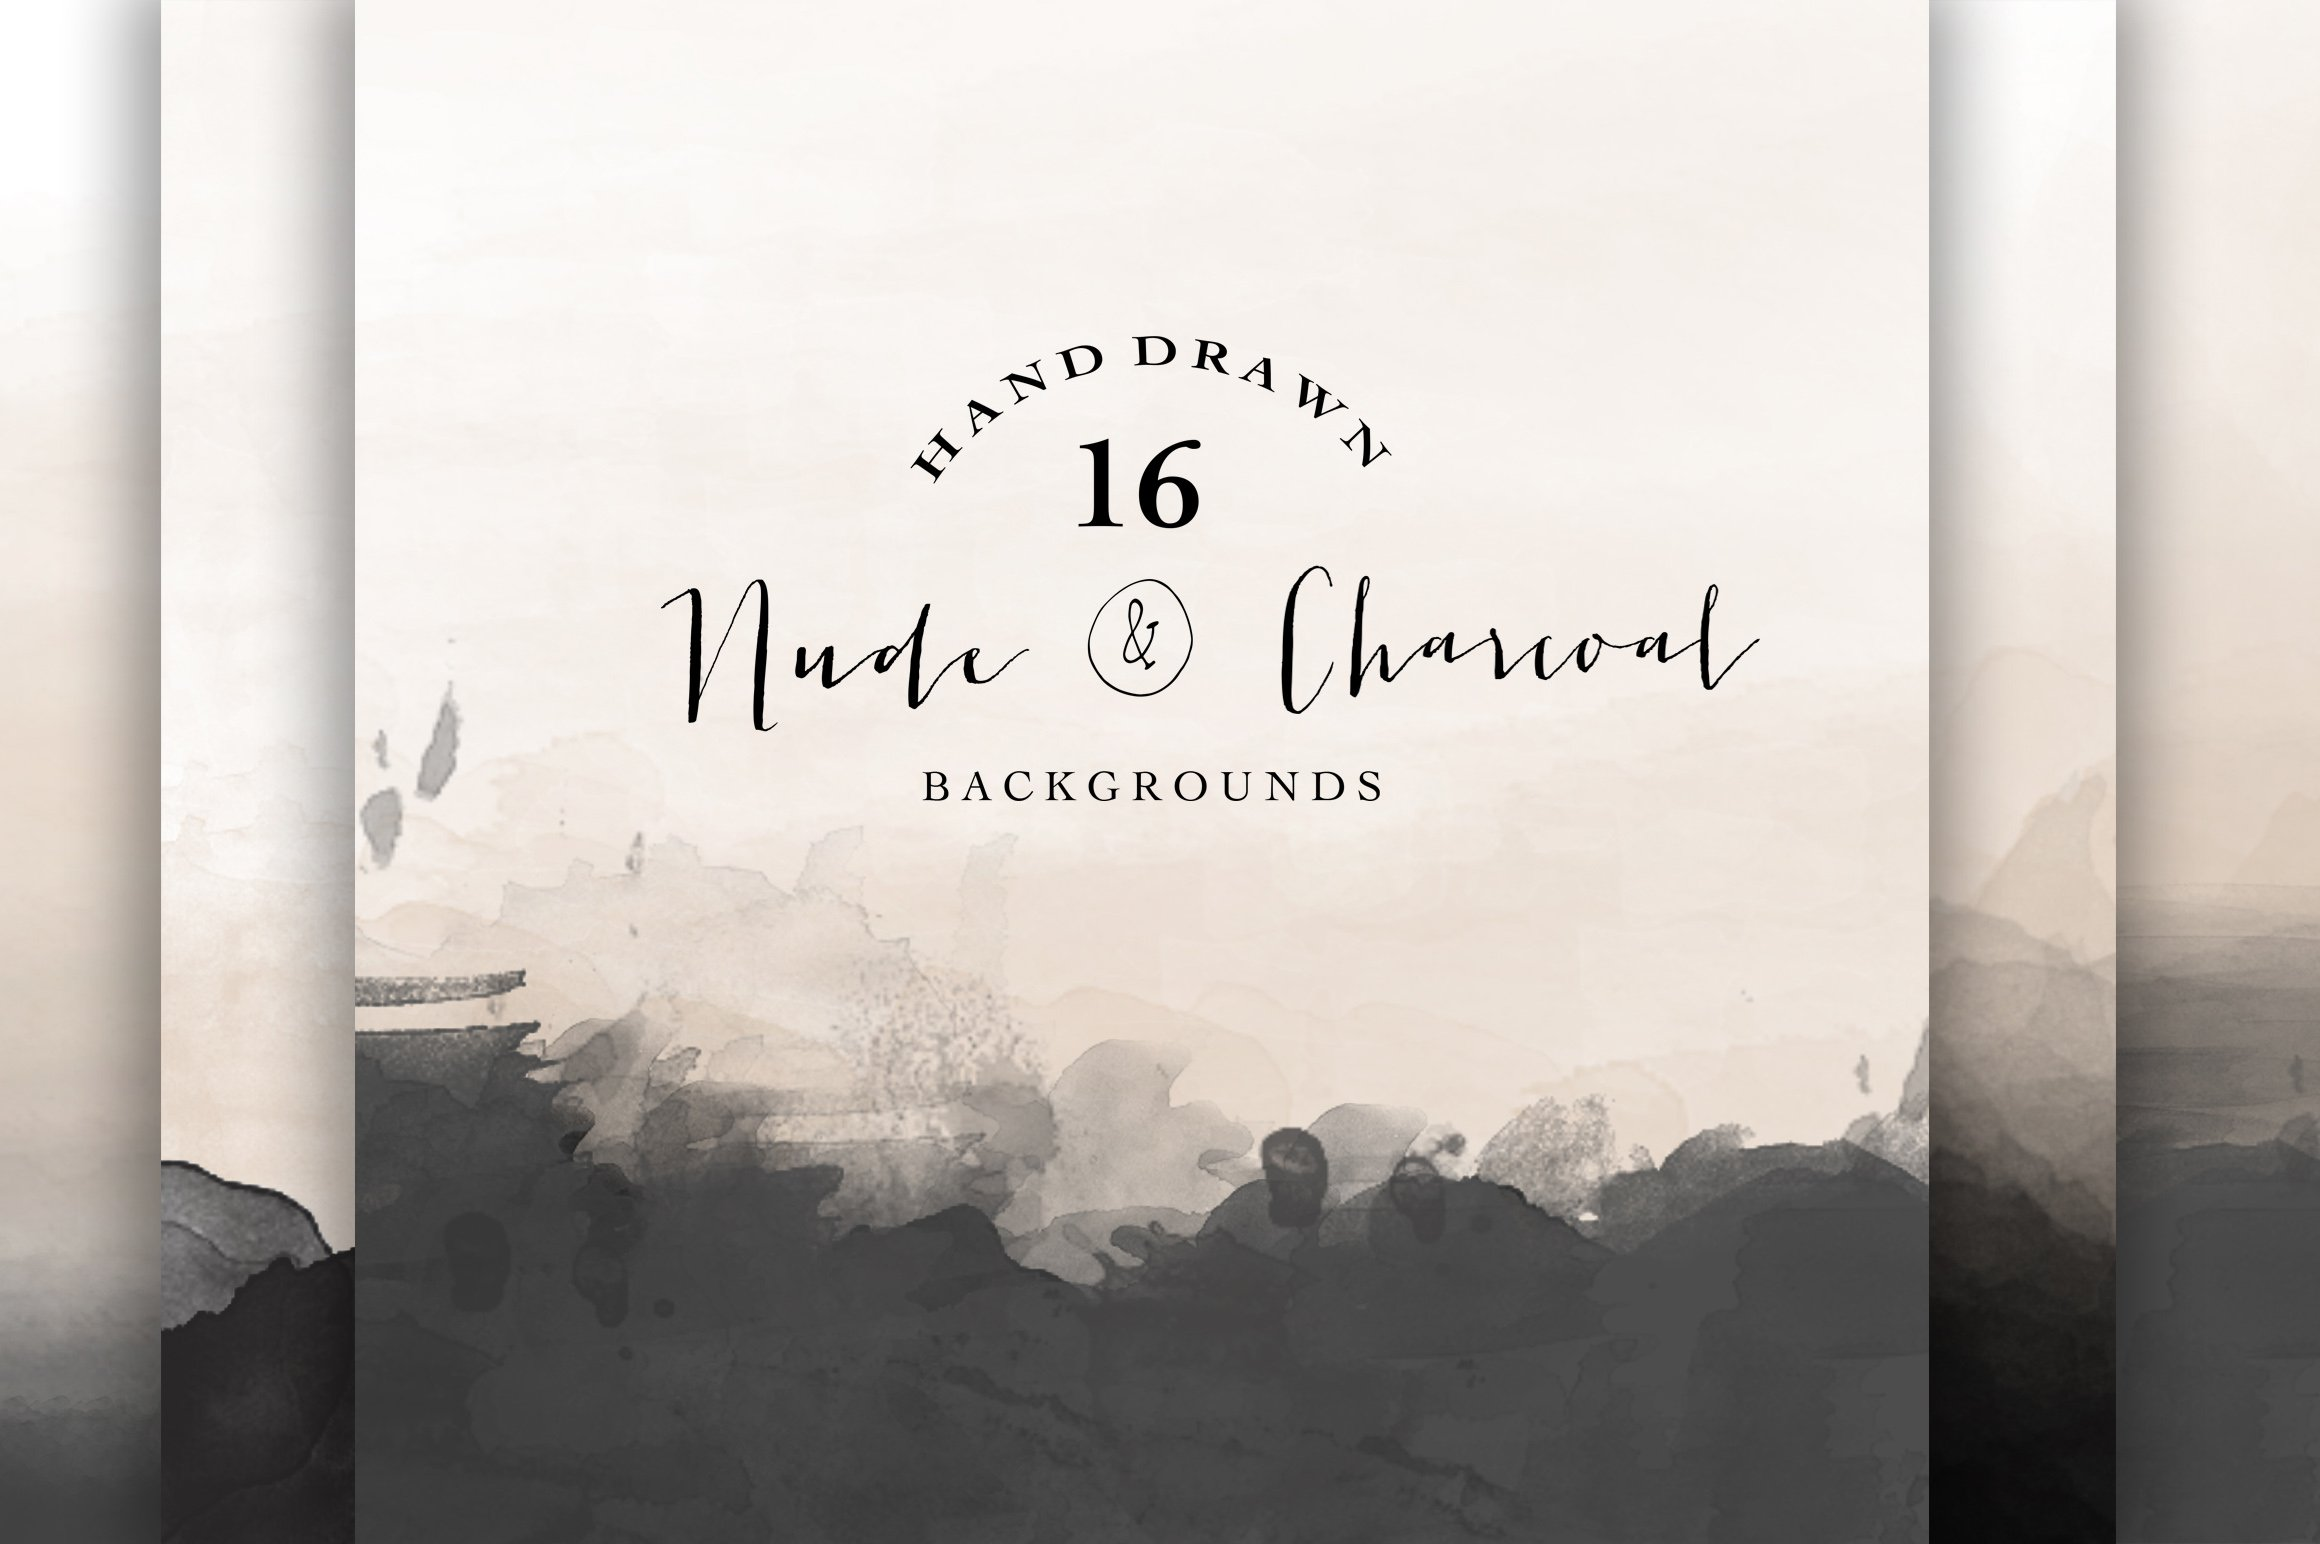 Nude And Charcoal Backgrounds Textures Creative Market